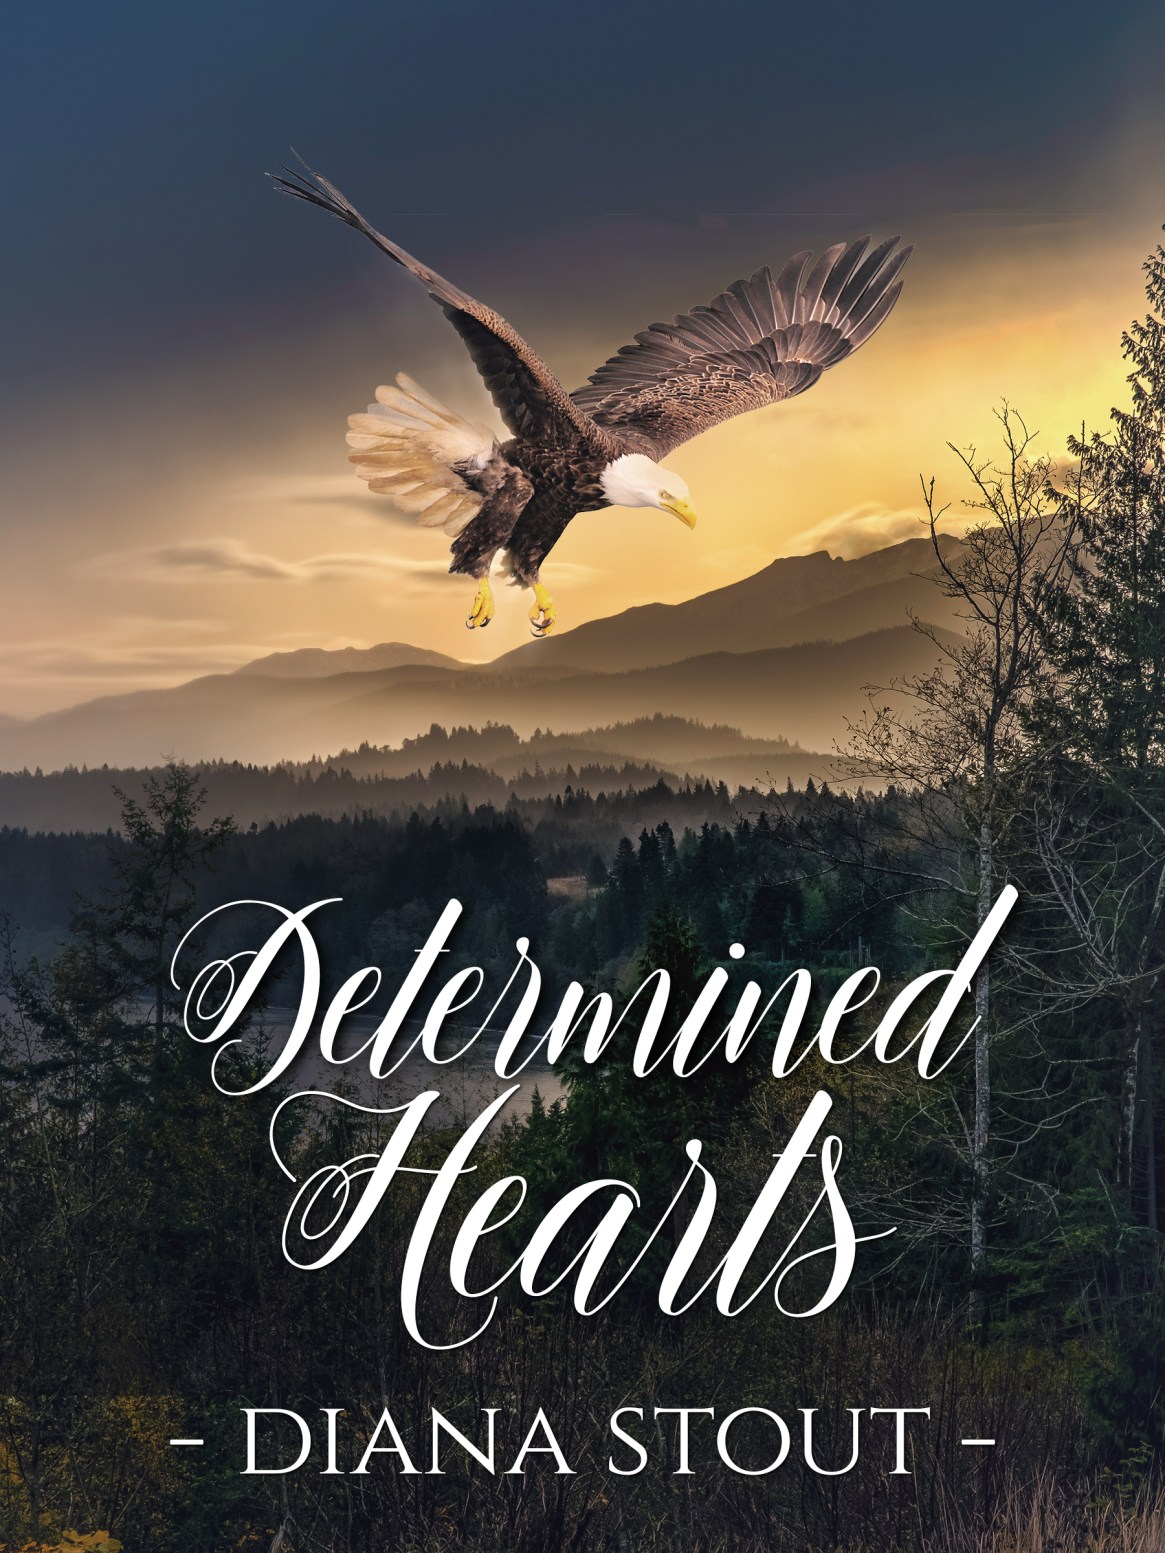 Determined Hearts 7 FINAL ebook 4 13 17 1